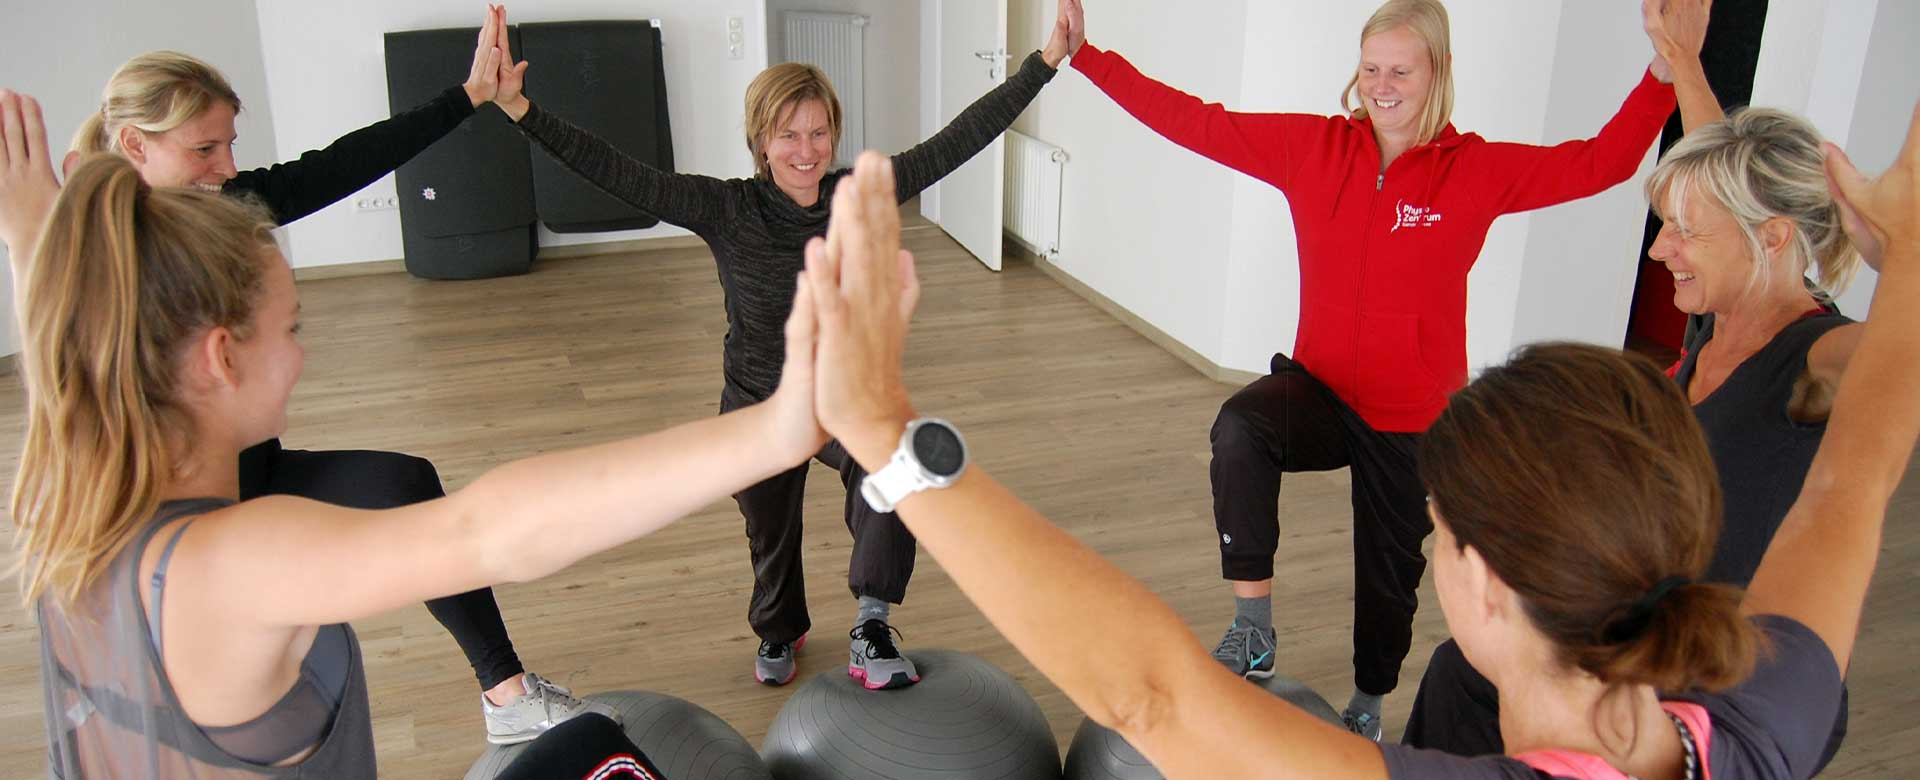 PhysioZentrum Ganderkesee Genius Rückentraining